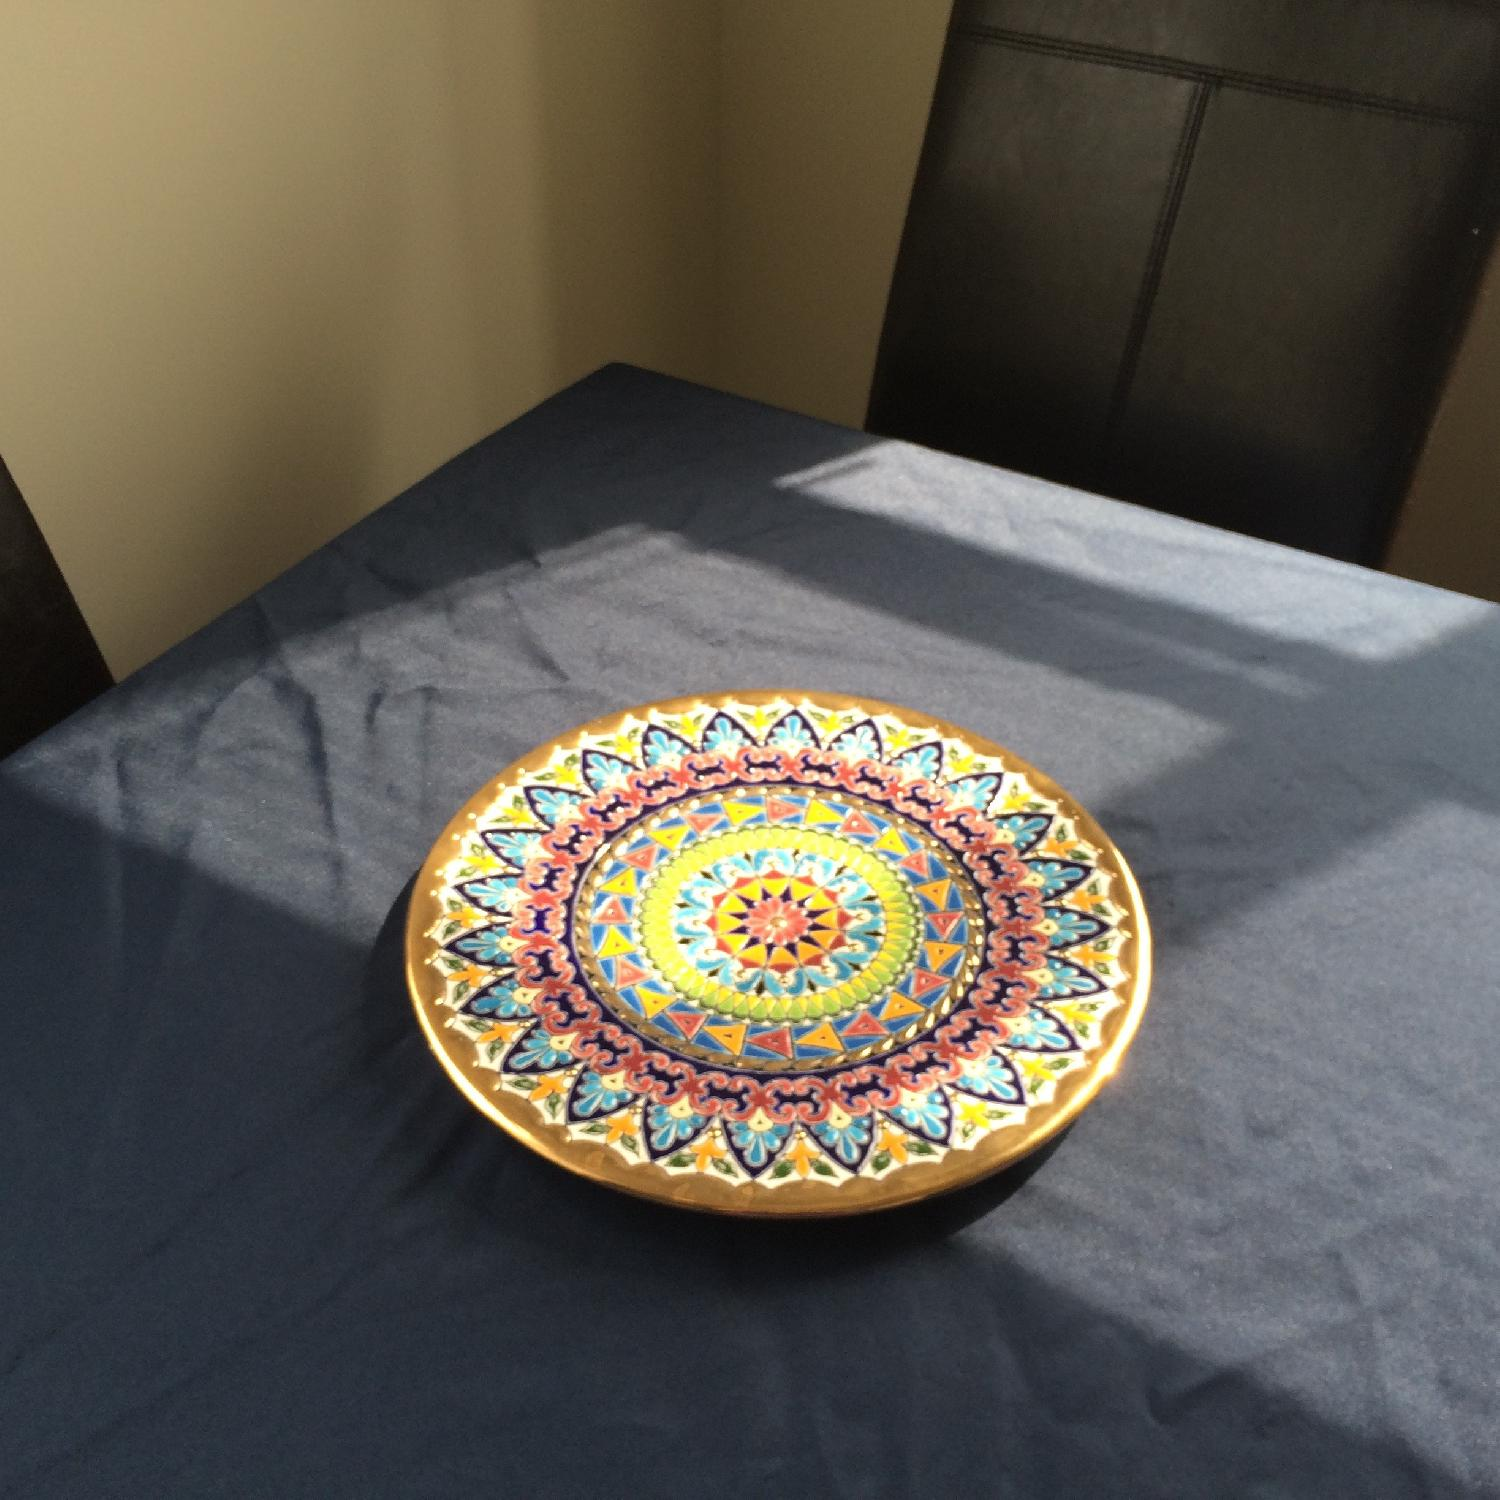 Artisanal Hand-Crafted Plate from Barcelona - image-3